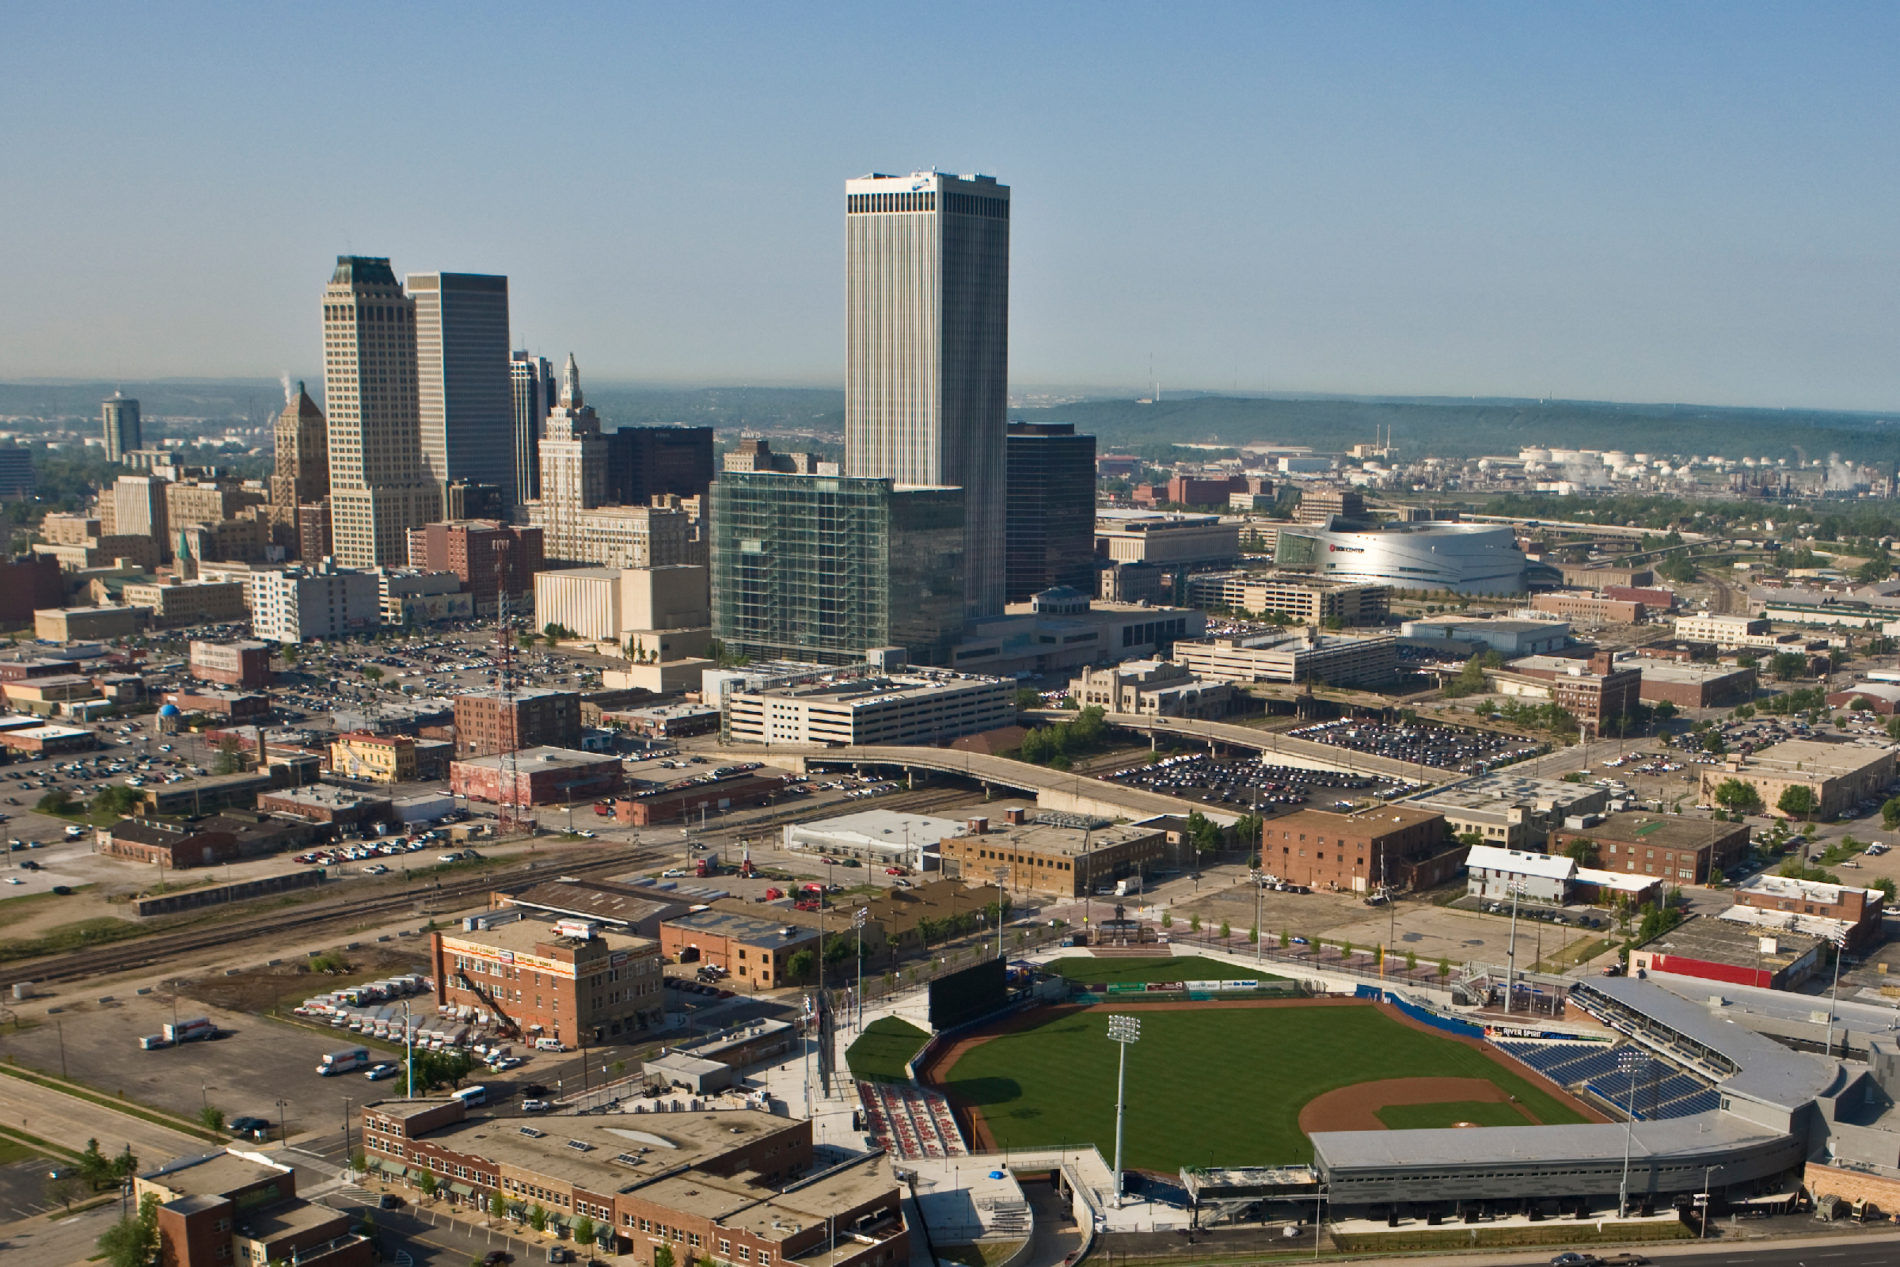 Aerial view of Tulsa skyline with the baseball field in the foreground